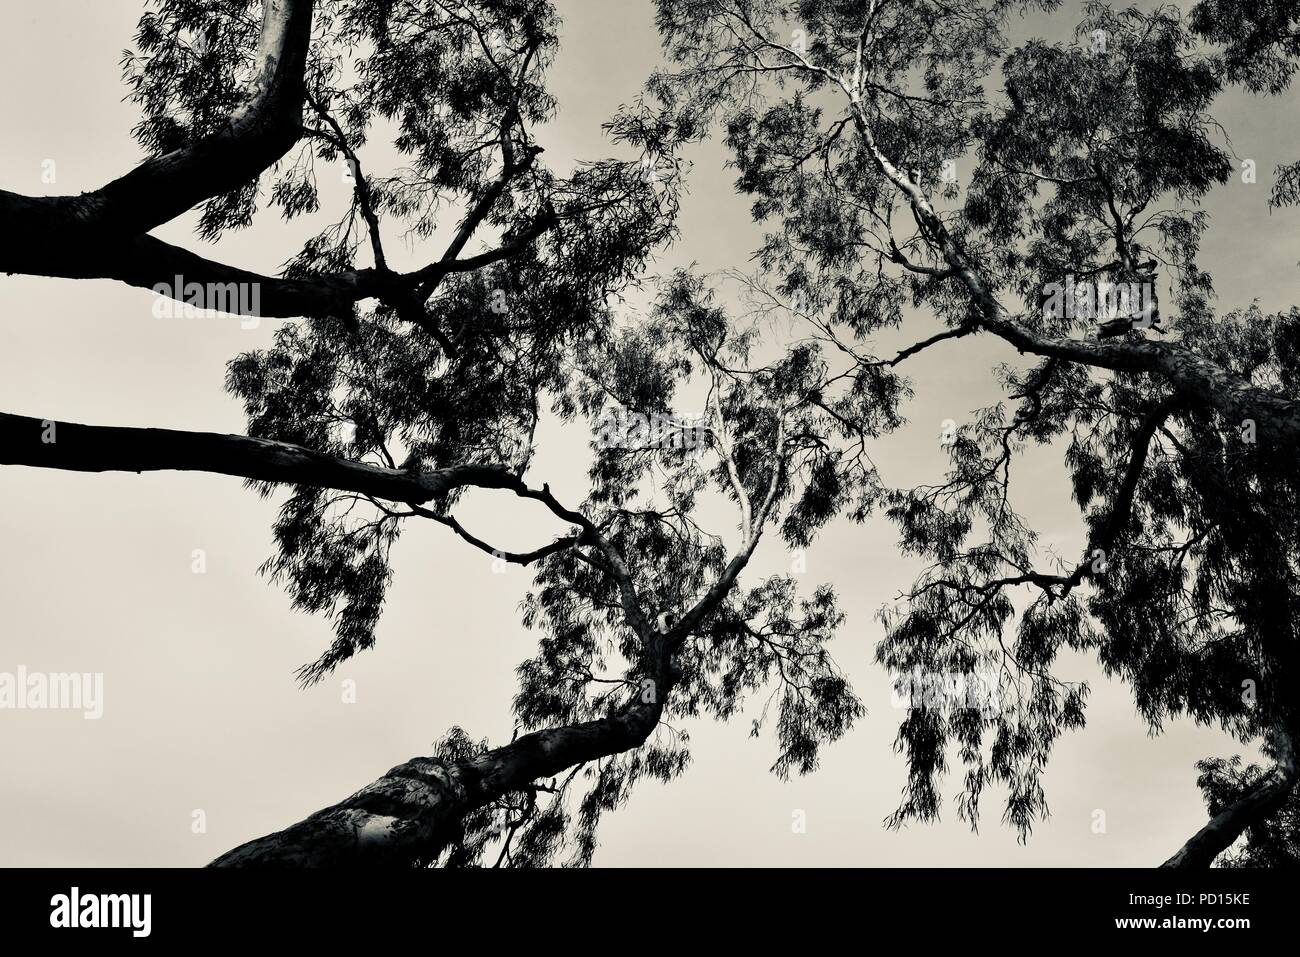 Tea trees in black and white looking up into the canopy, Booroona walking trail on the Ross River, Rasmussen QLD 4815, Australia - Stock Image